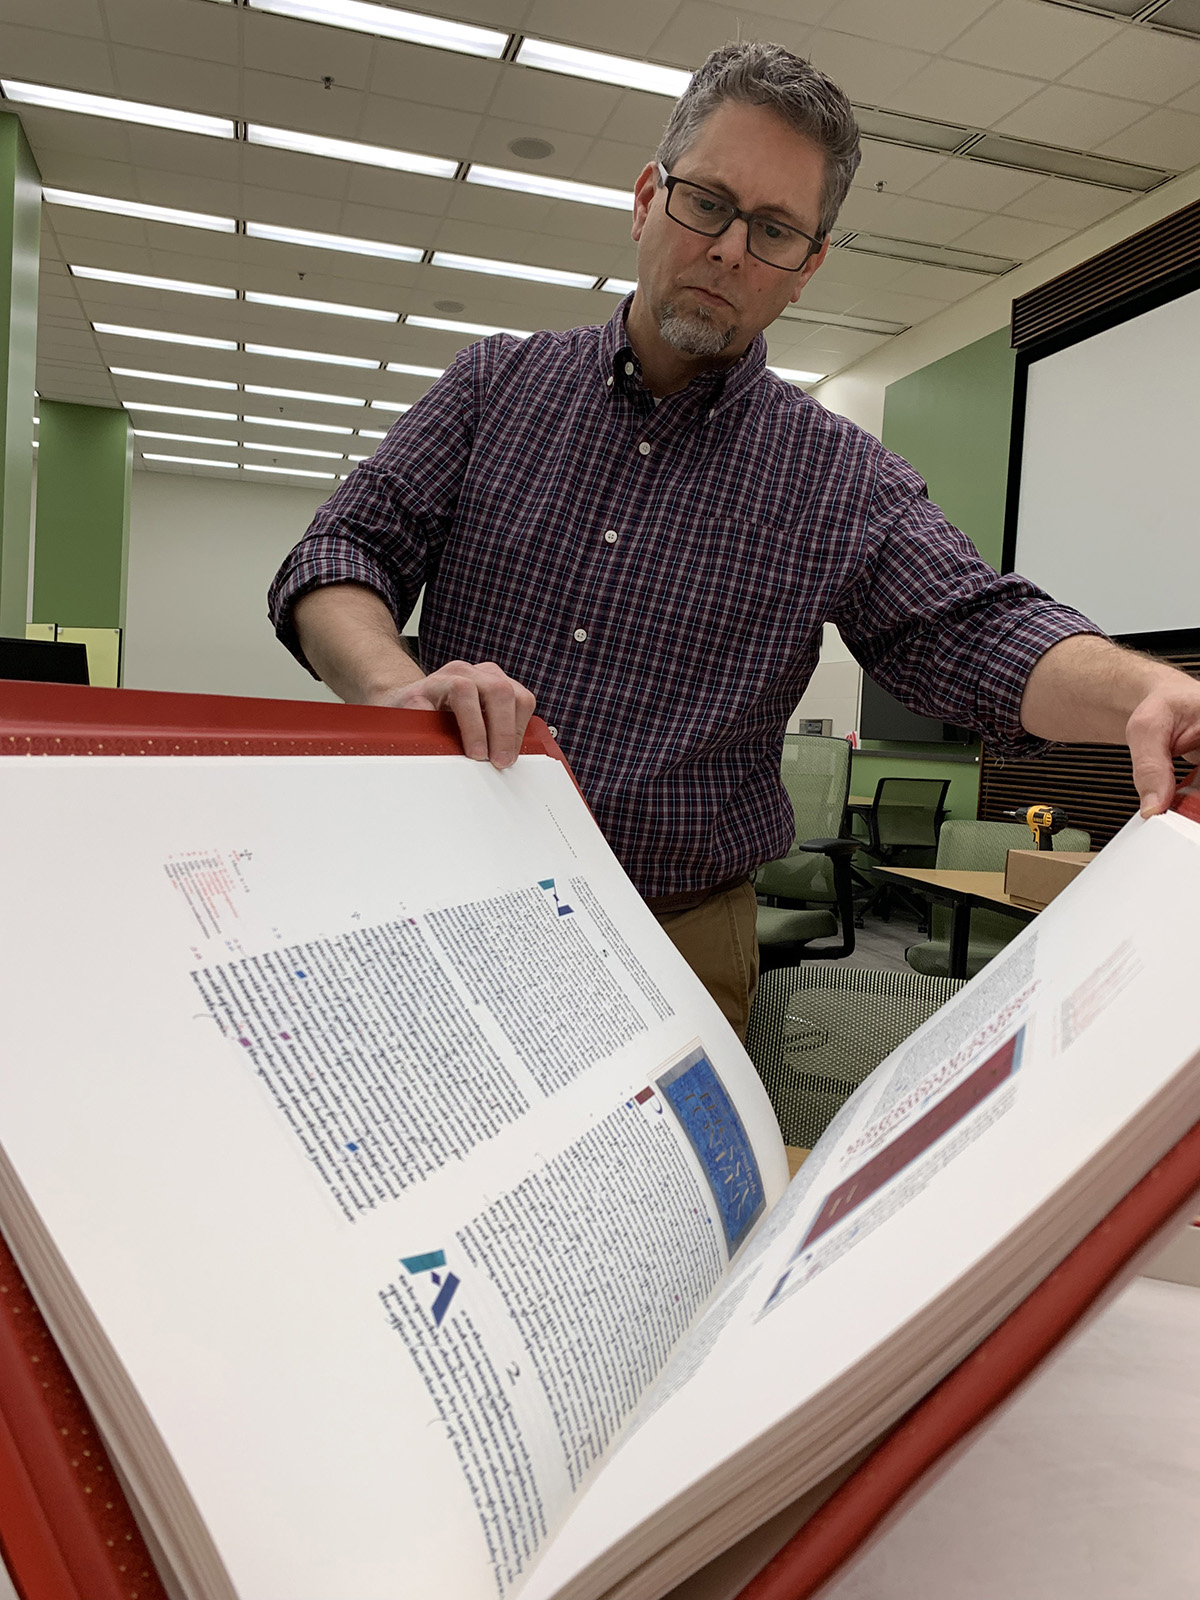 Interim Associate Dean for University Libraries Sha Towers opens a volume from the St. John's Bible Heritage Edition